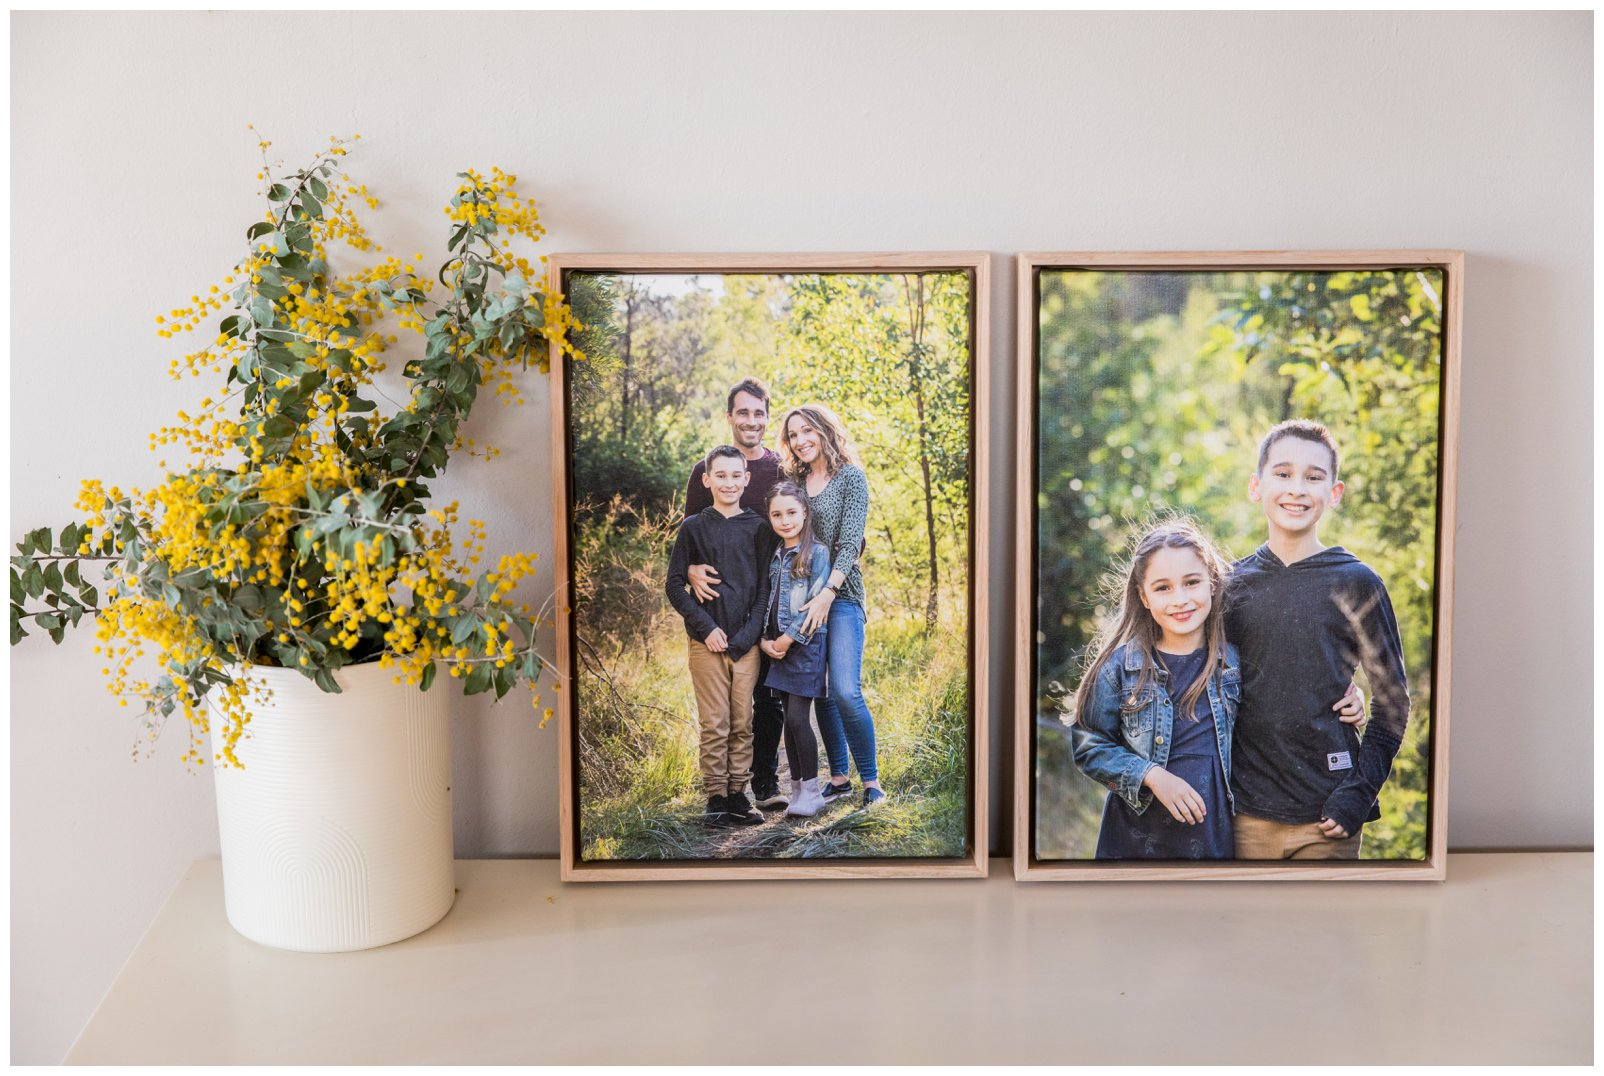 Framed Canvas of family on wattle shelf